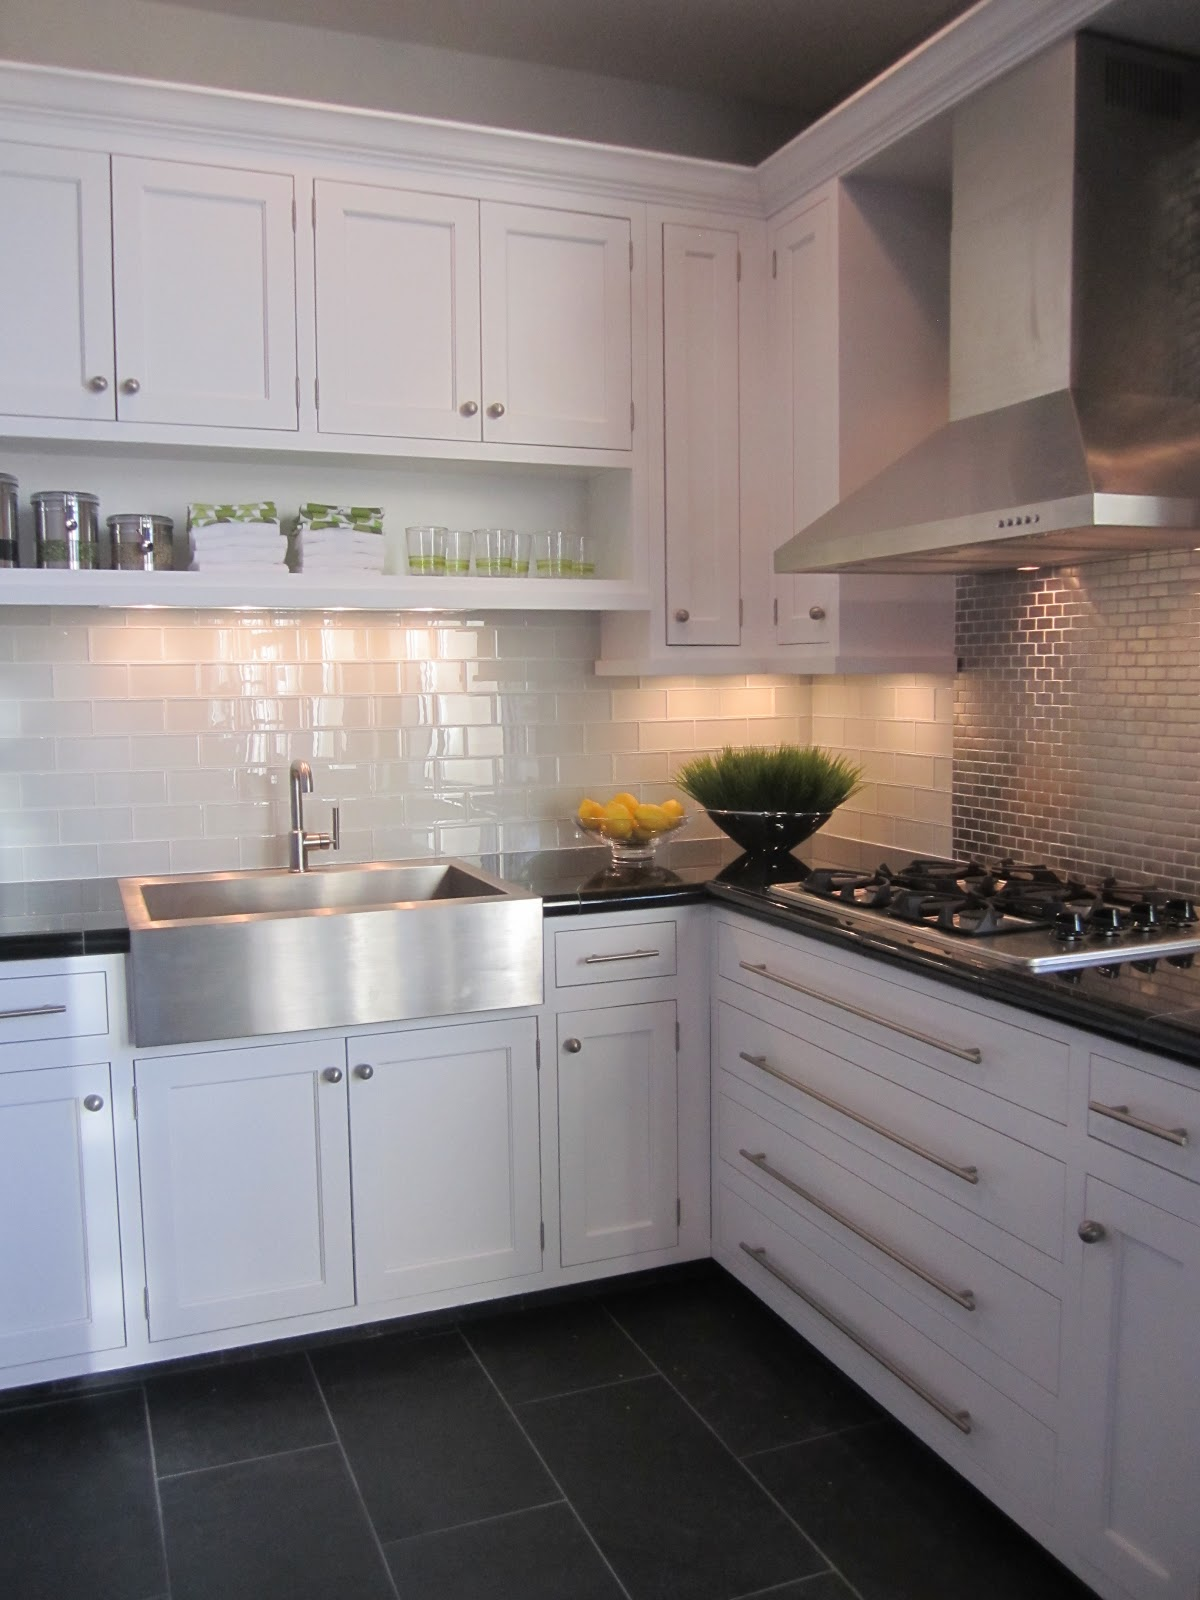 Kitchen Cabinets Edison Nj The Tile Shop Design By Kirsty 1 20 13 1 27 13